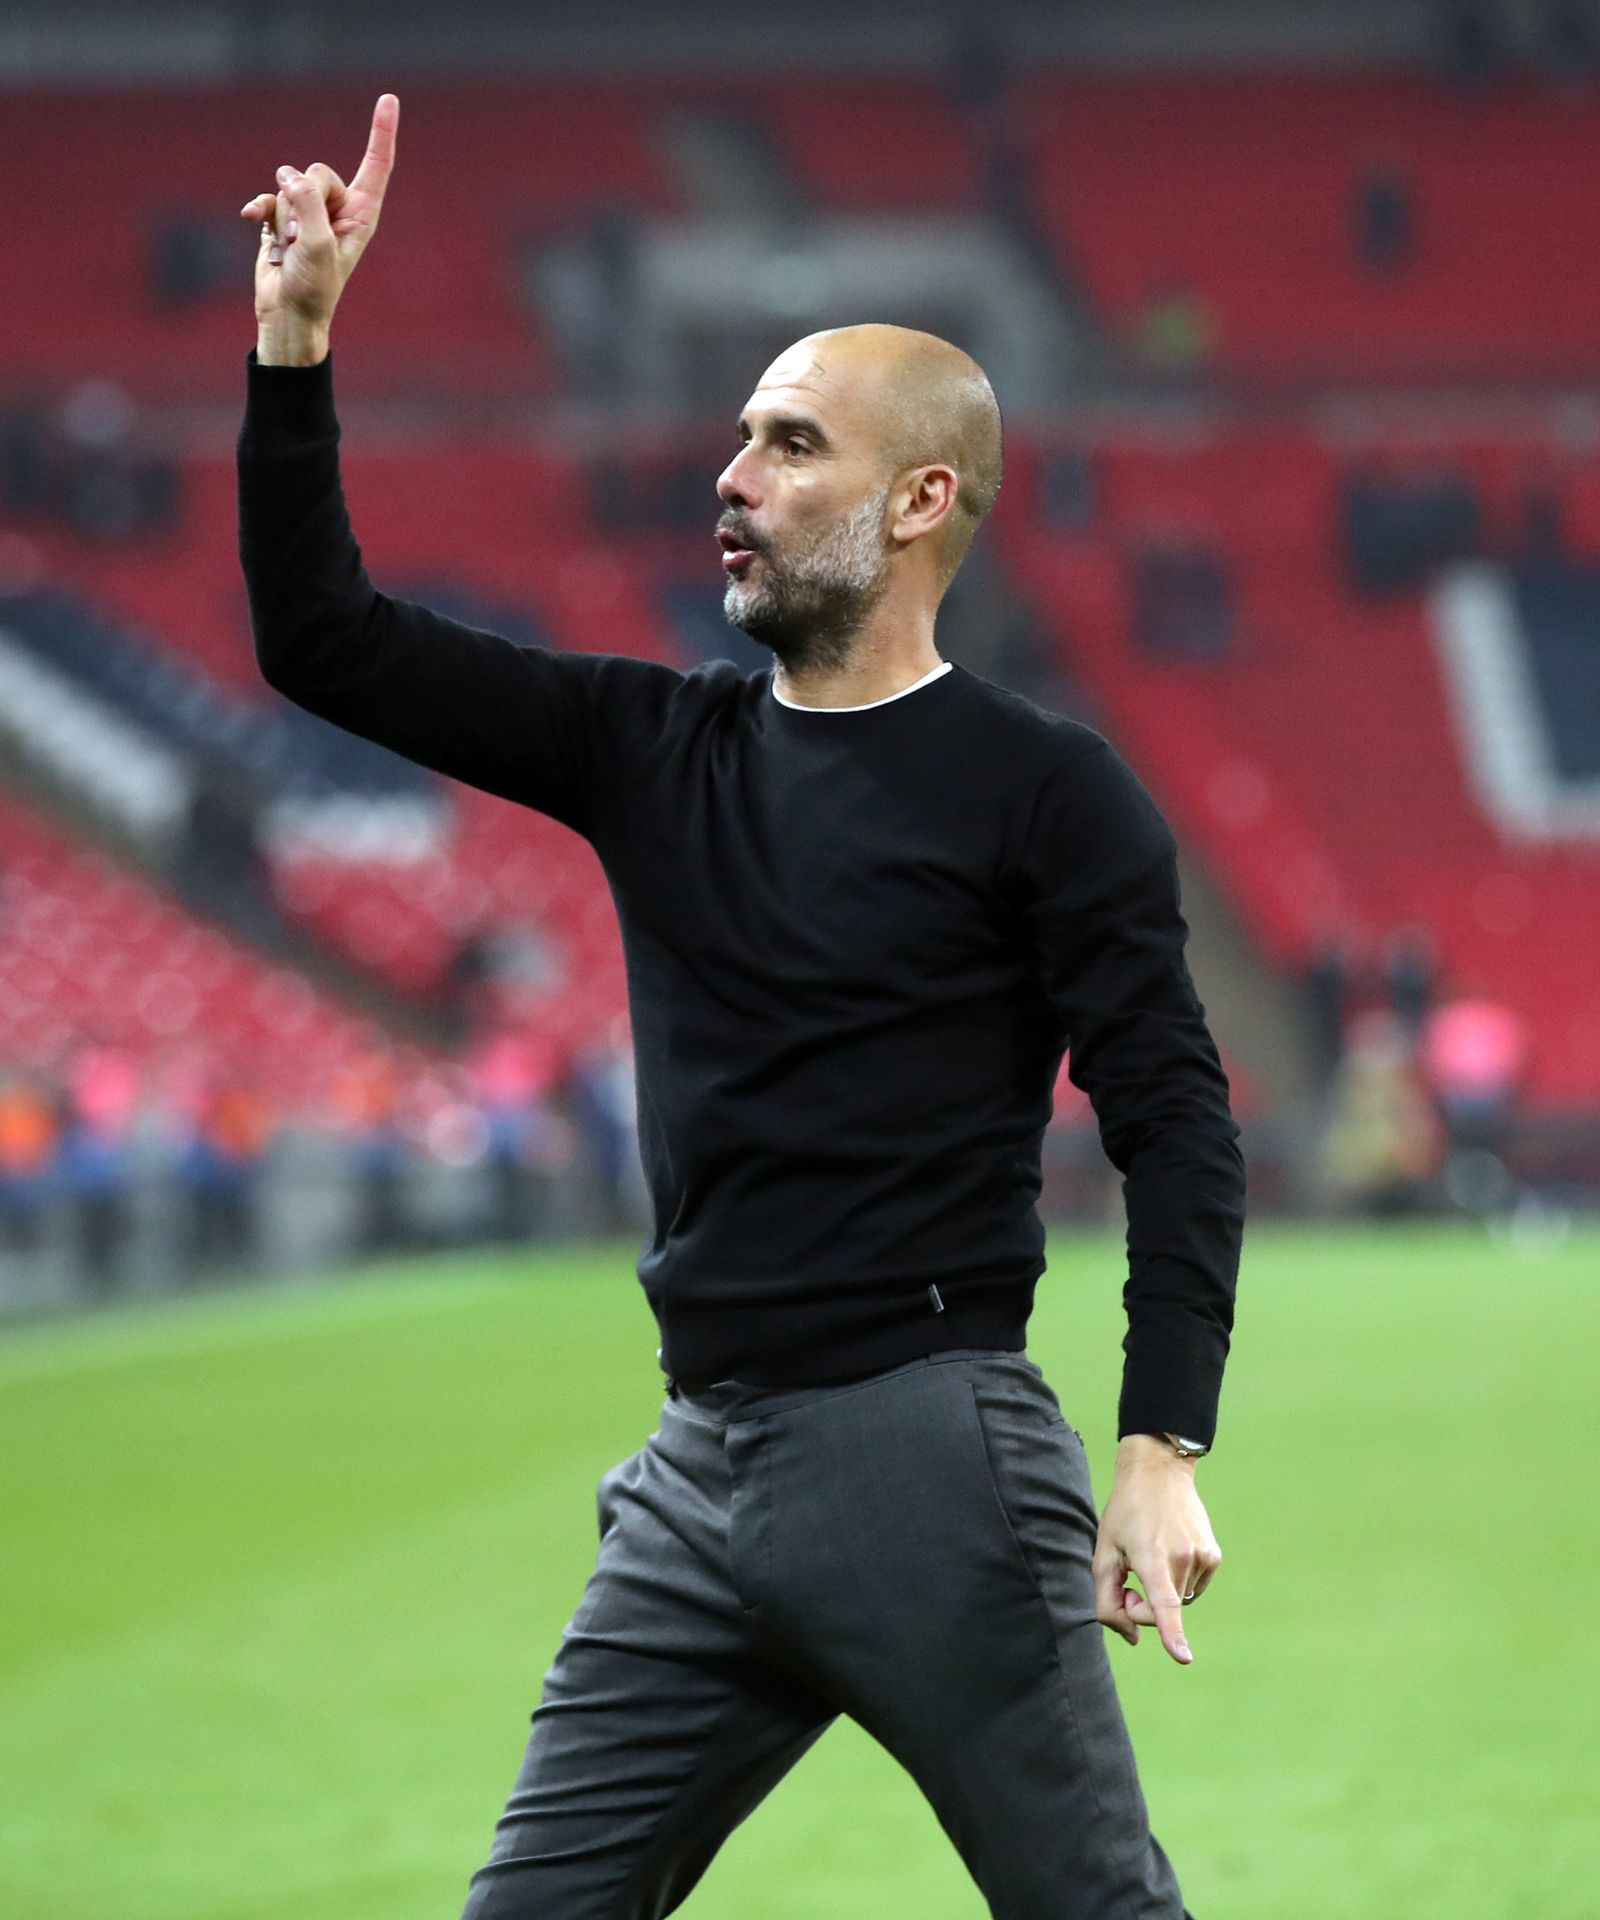 Pep Guardiola Manchester City - Premier League - Wembley St